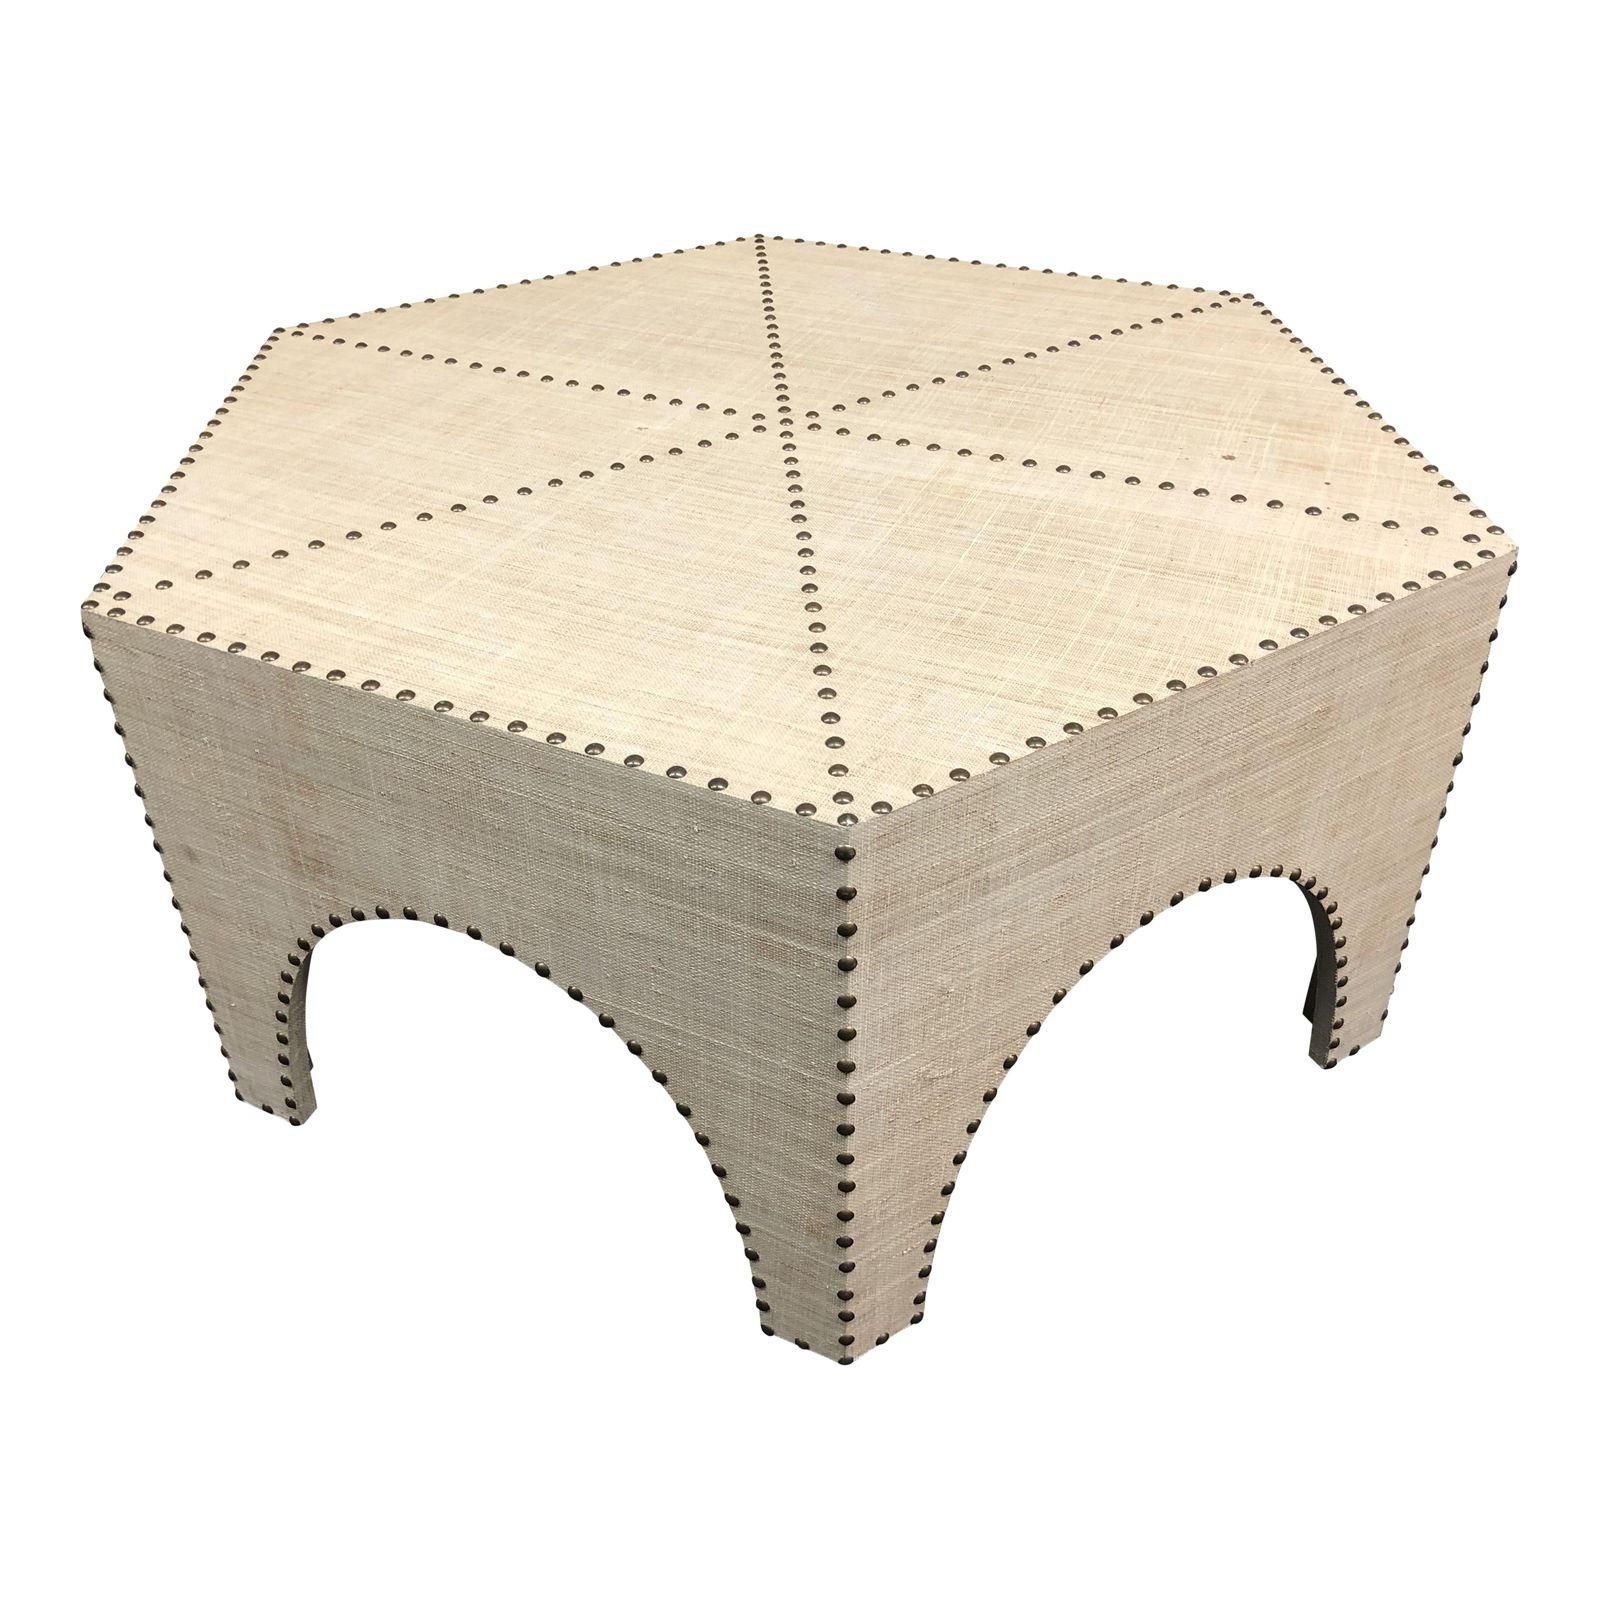 Recent Casablanca Coffee Tables With Regard To New Palecek Casablanca Raffia Coffee Table – Design Plus Gallery (View 6 of 20)